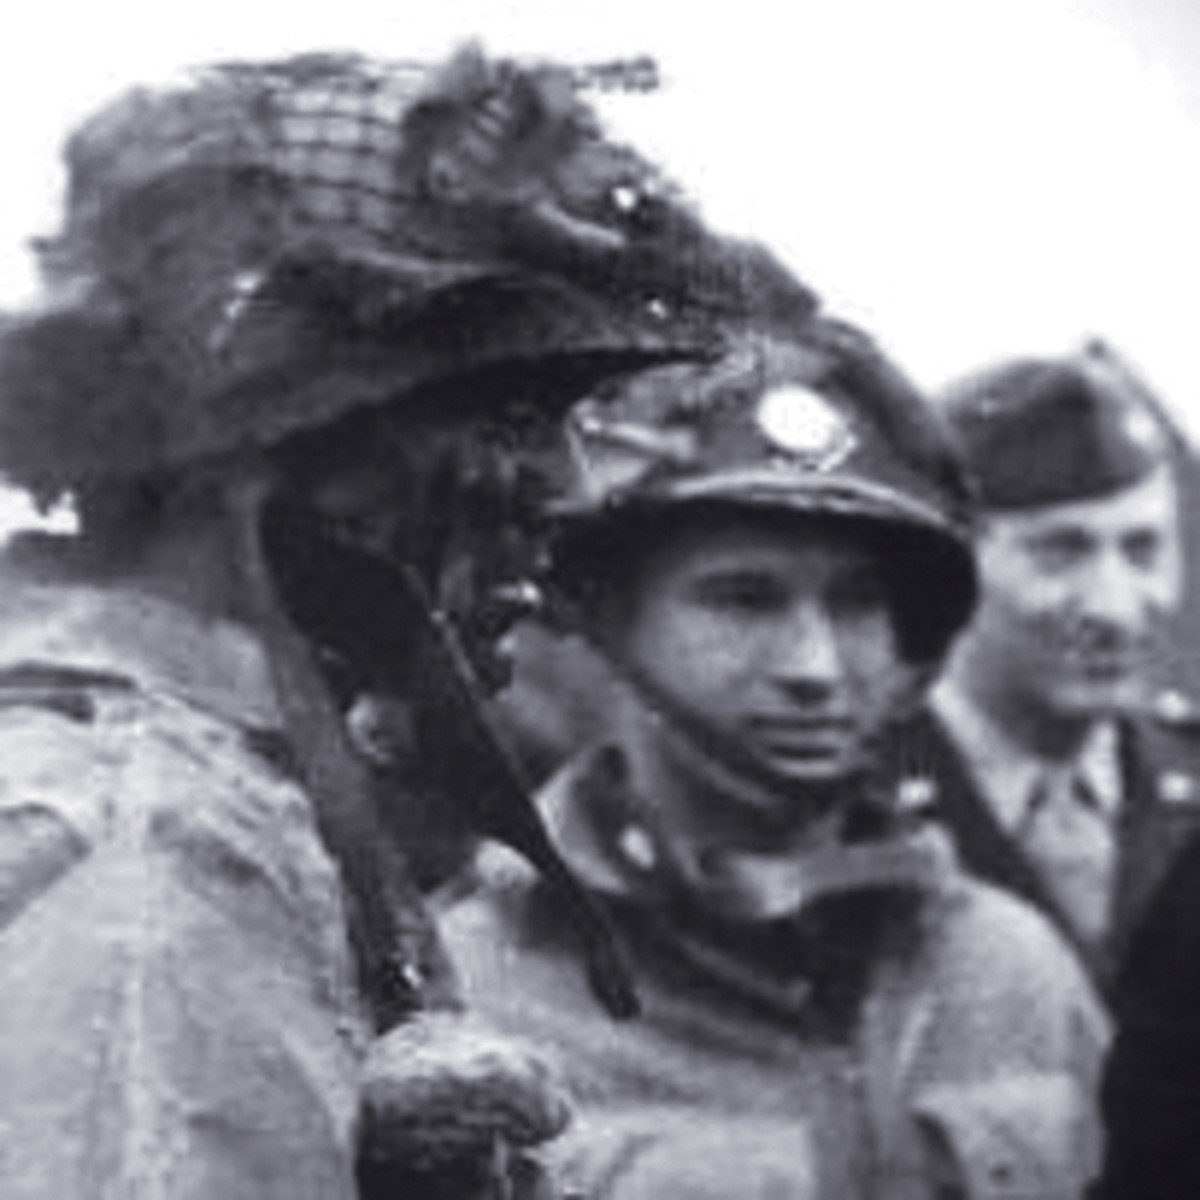 During WWII, US troops used luminous disks for marking personnel, equipment, bridges, etc. They were filled with radium which constantly gave off weak, green light due to its radioactivity. Luminous discs were issued on a very limited scale to paratroopers (like these of the 101st Airborne) who were about to make the jump at Normandy during the D-Day invasion.